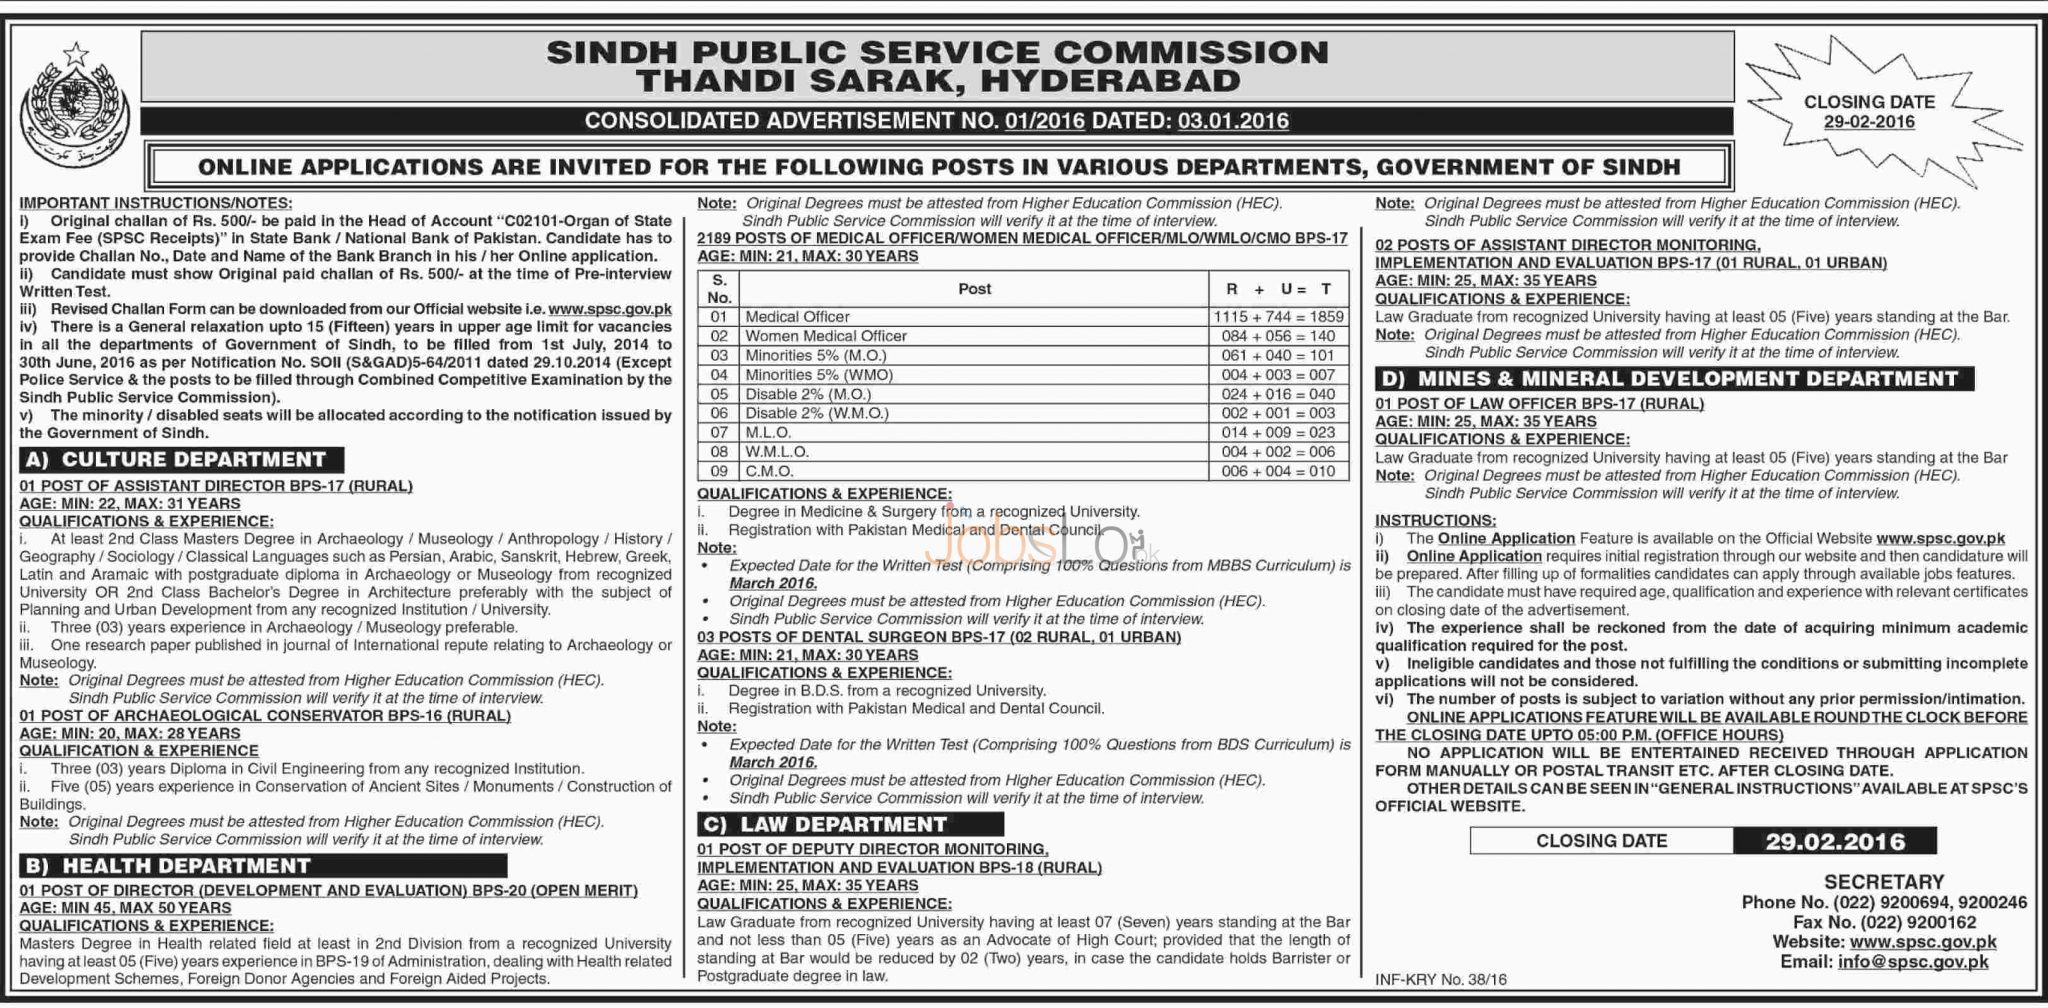 Sindh Public Service Commission Recruitment Offers in Hyderabad 27th Jan 2016